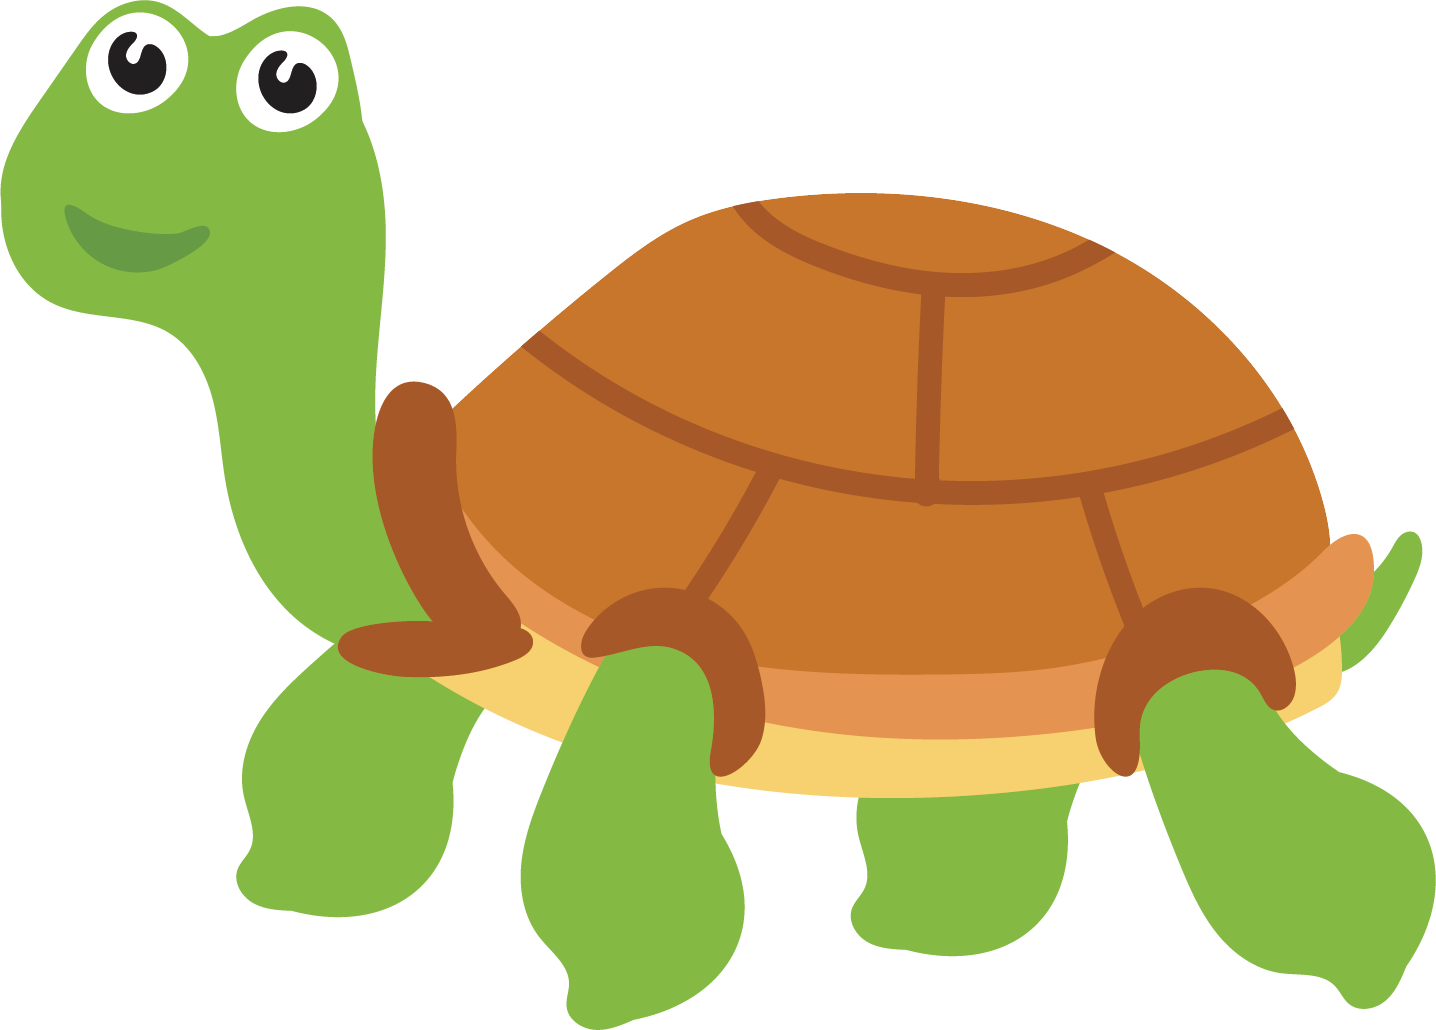 Clipart turtle vector. Sea tortoise hand painted